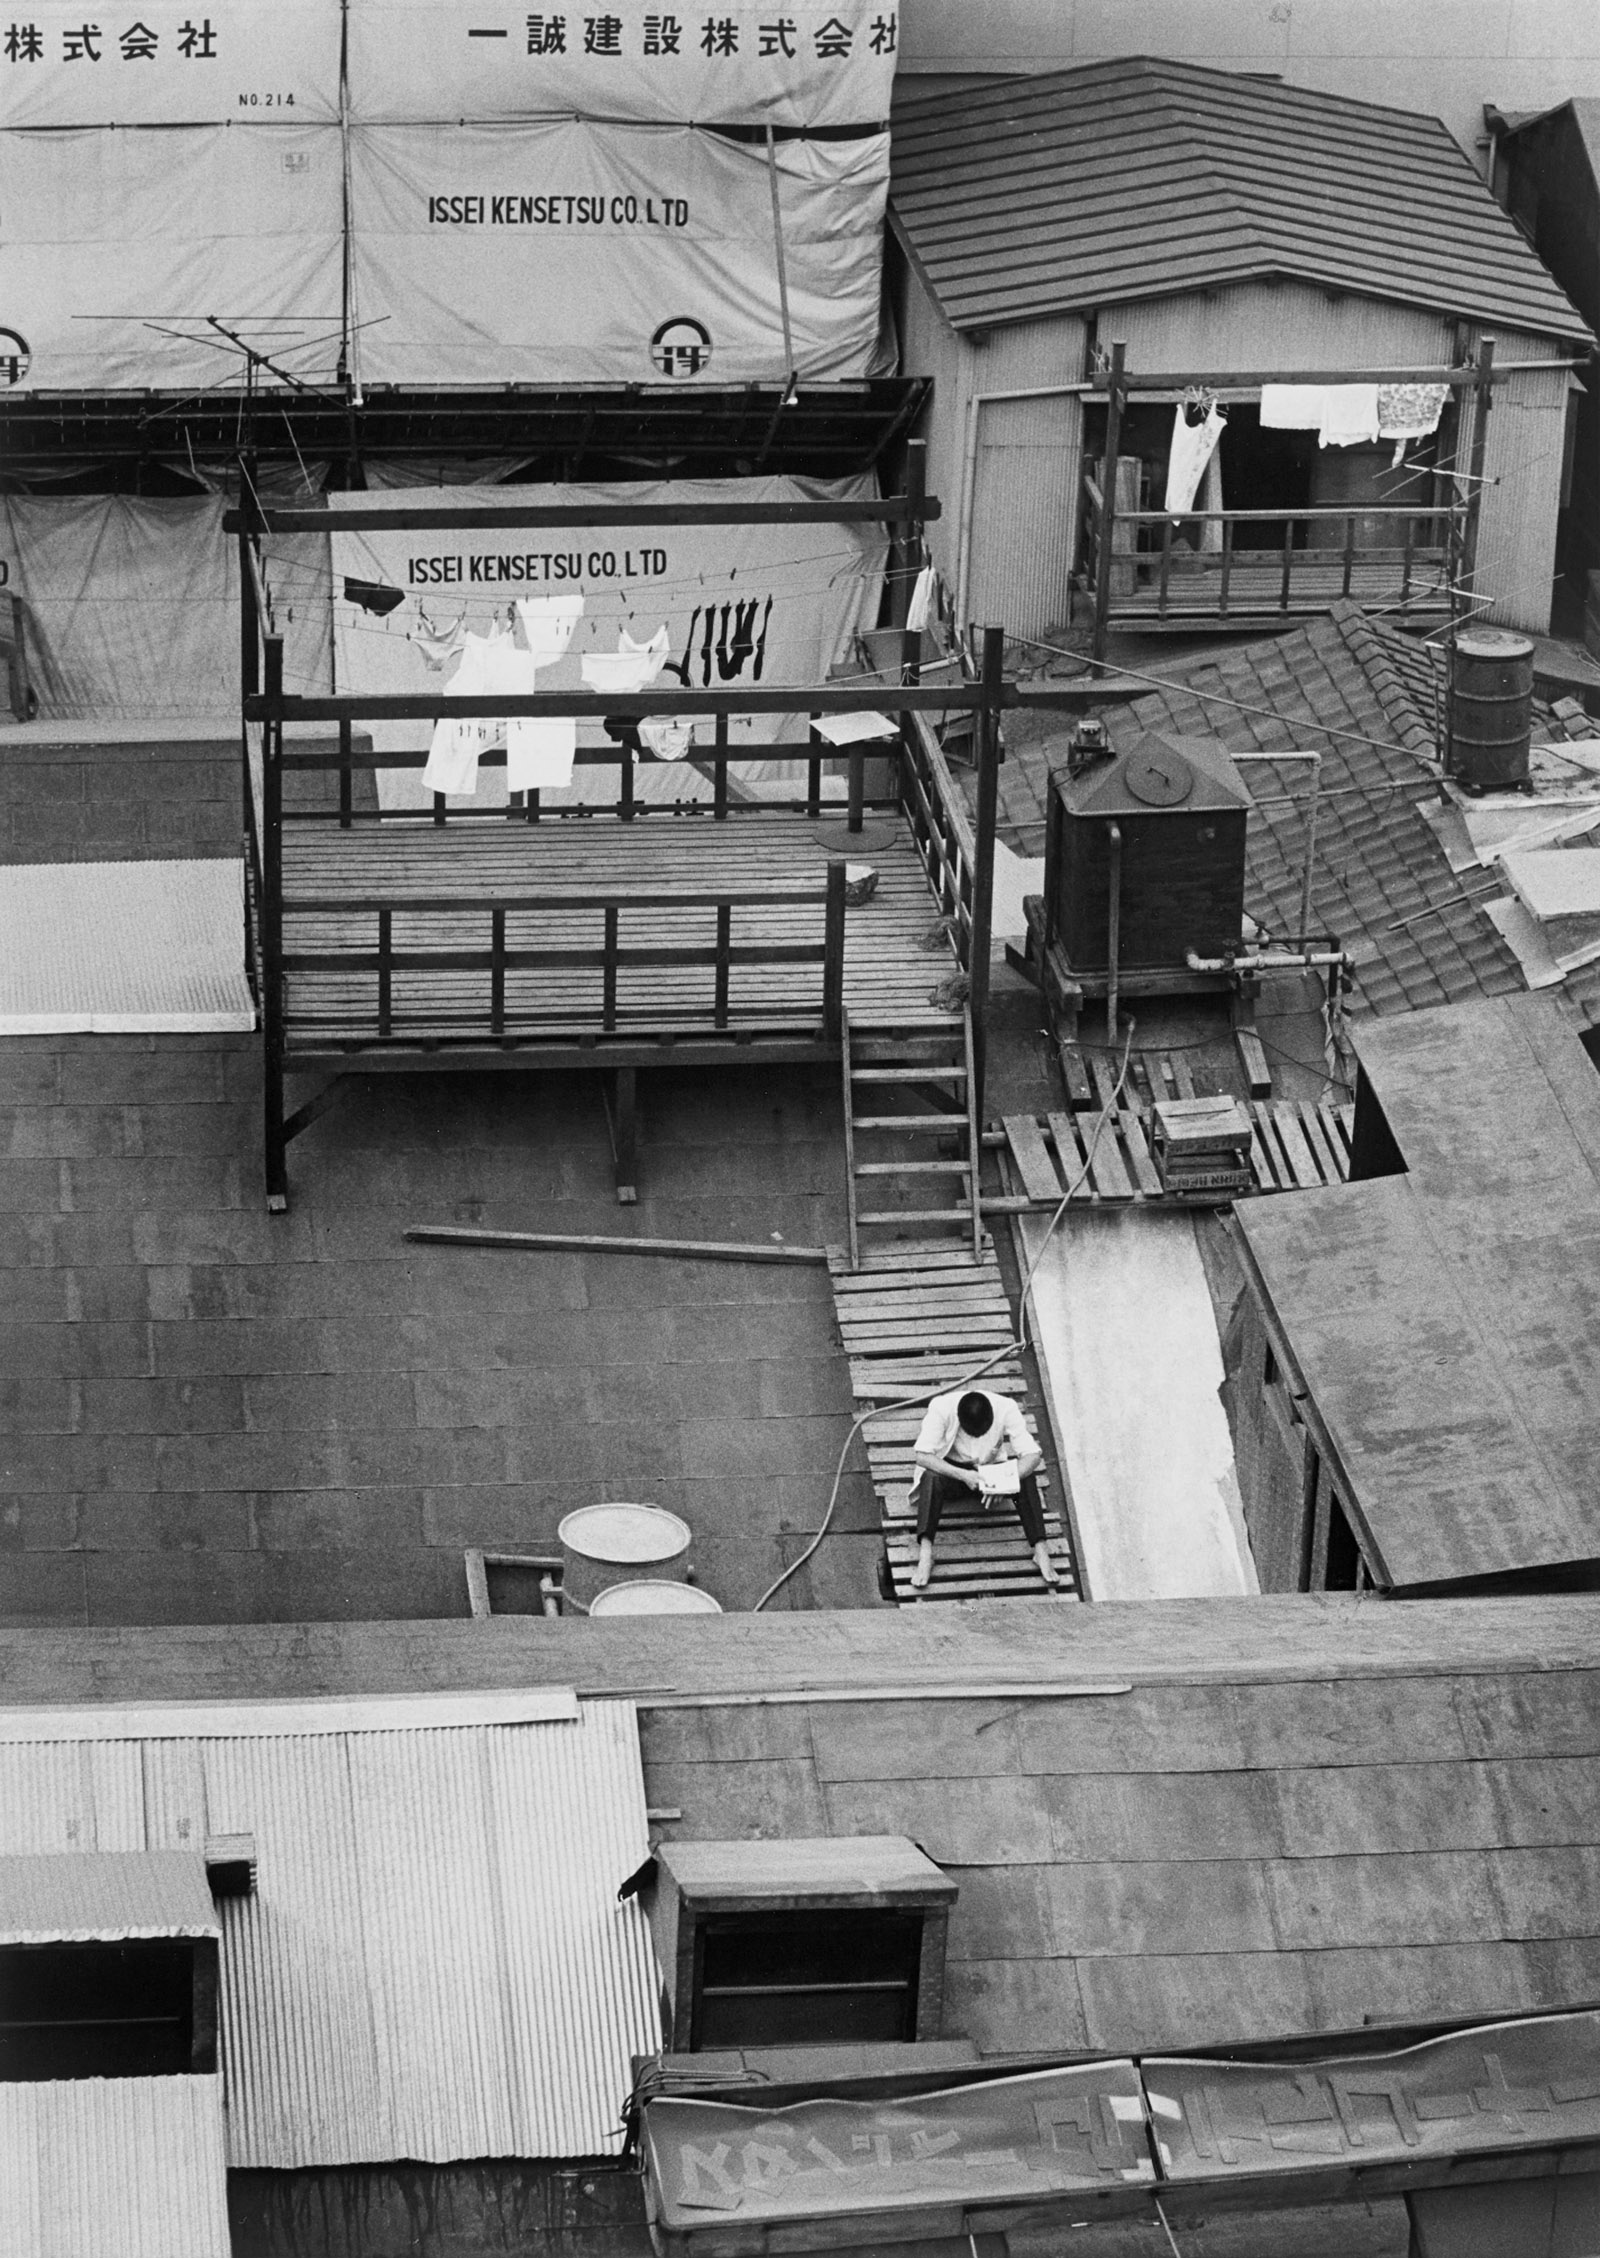 Photograph of apartment building rooftop by Yasuhiro Ishimoto